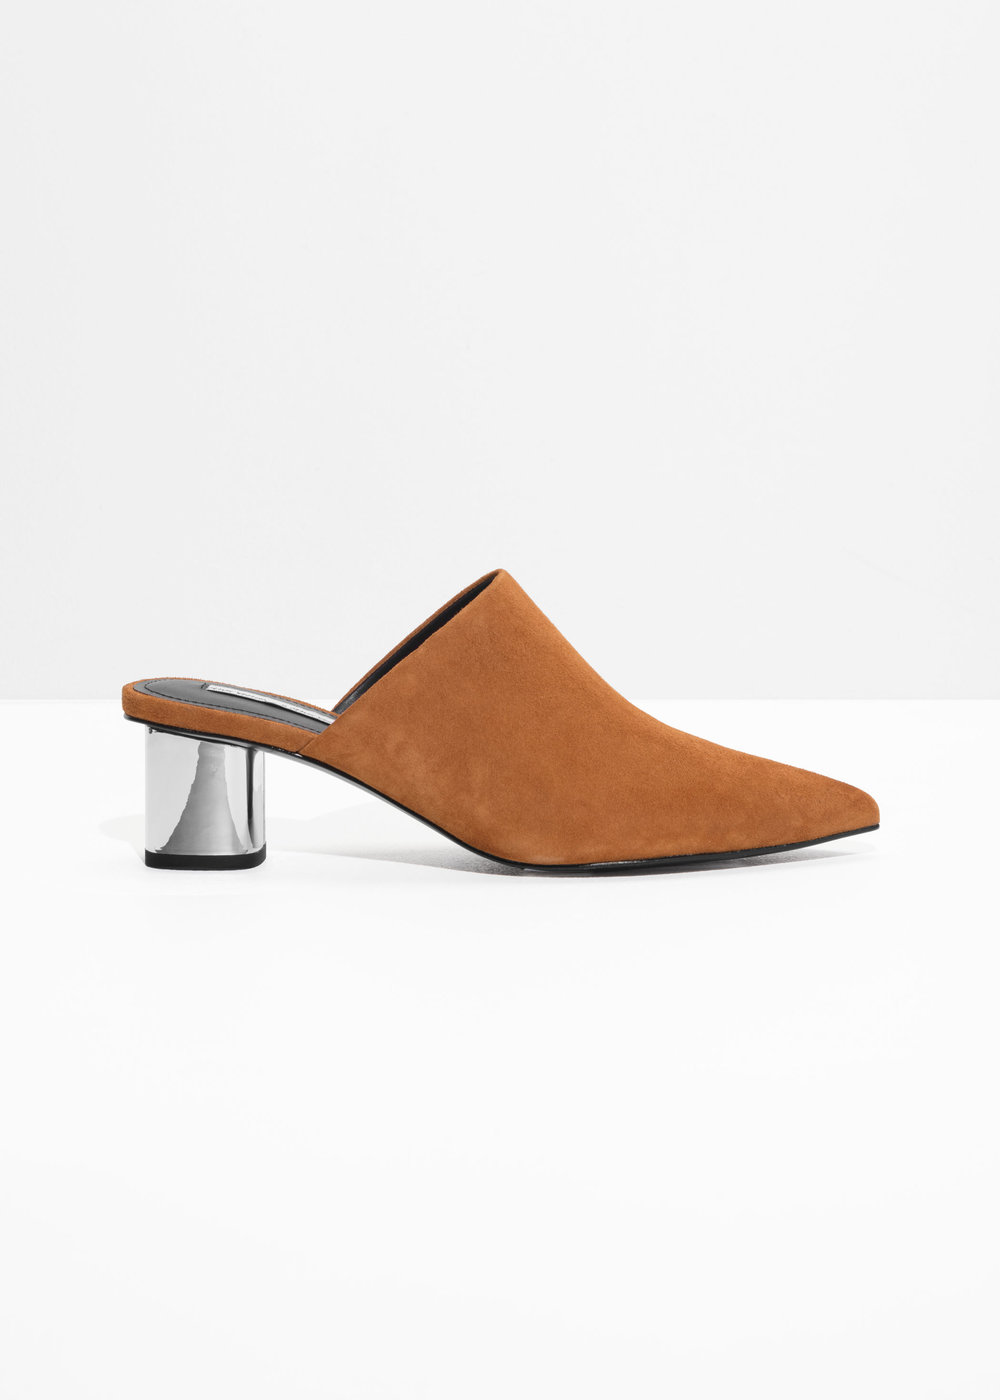 - & Other Stories / Pointed Block Heel Mules